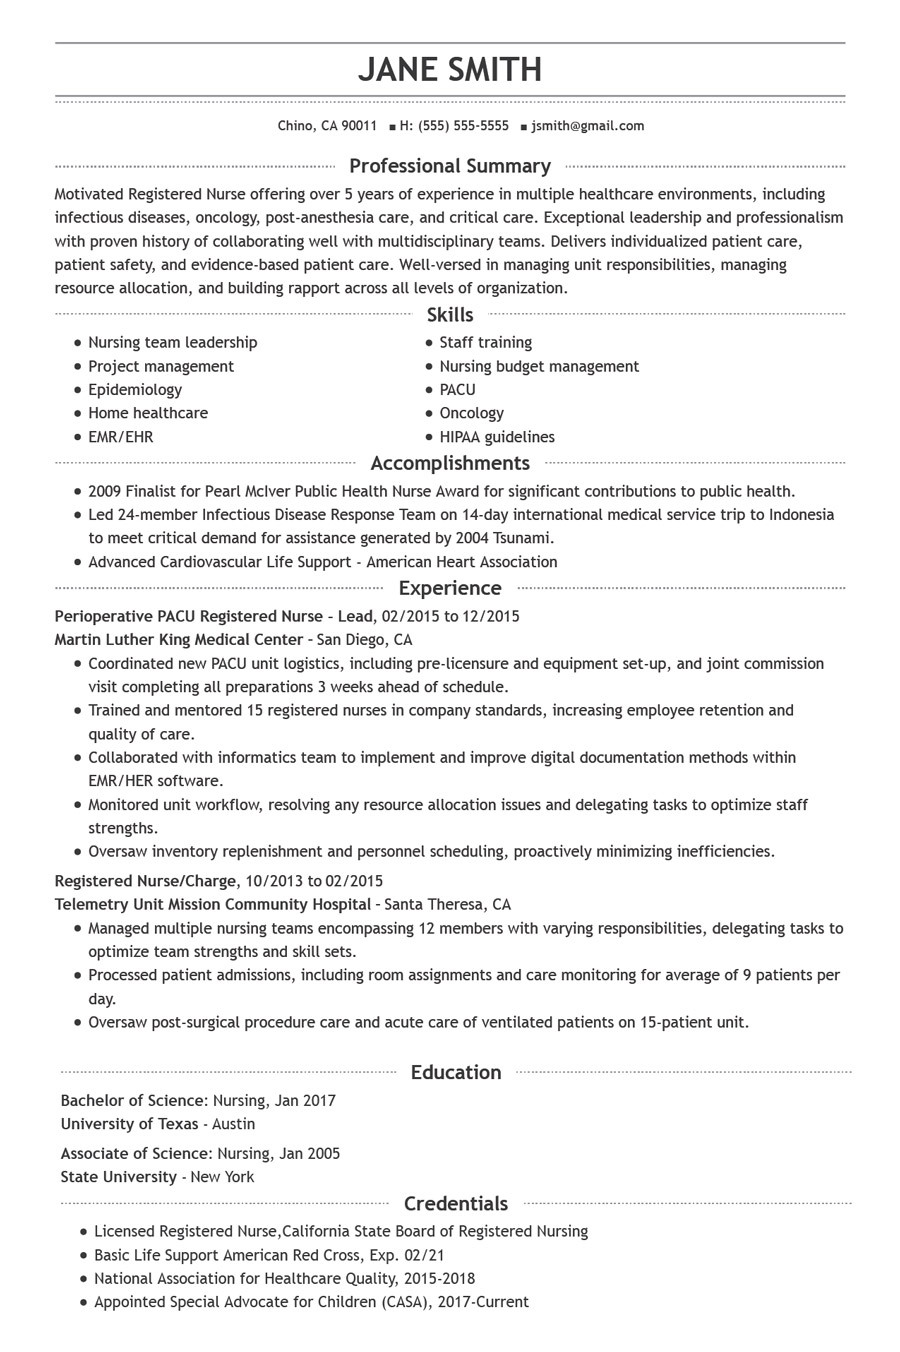 complete guide to nurse resume writing resumehelp detailed for nurses chronological scp Resume Detailed Resume For Nurses